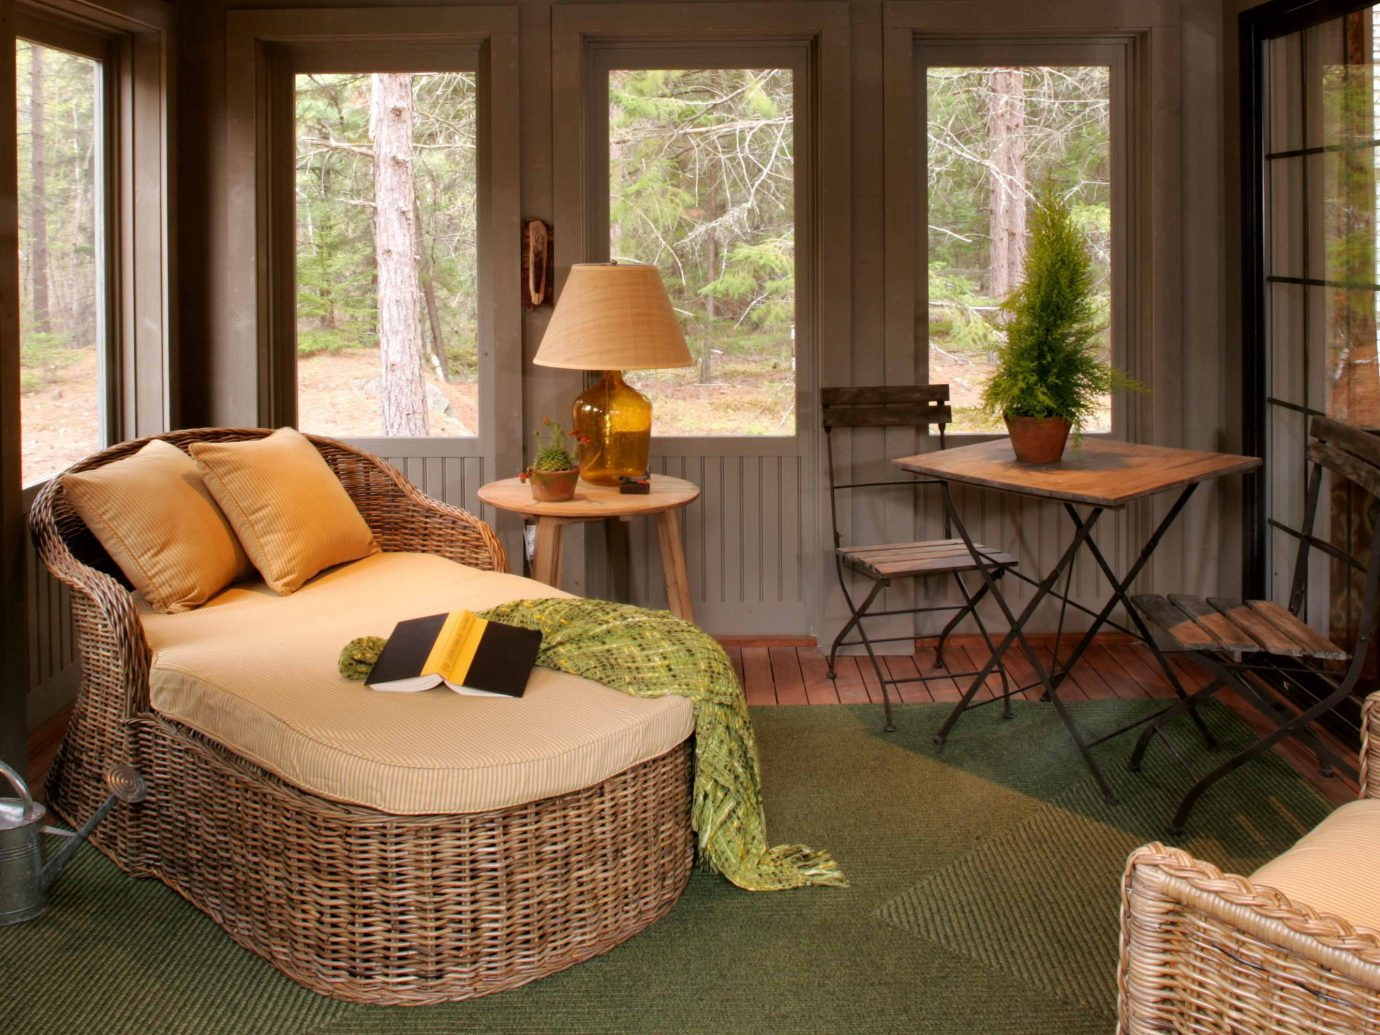 Romance Trip Ideas Weekend Getaways indoor window room Living sofa floor living room interior design furniture home green real estate chair estate porch outdoor structure wicker Suite table area decorated